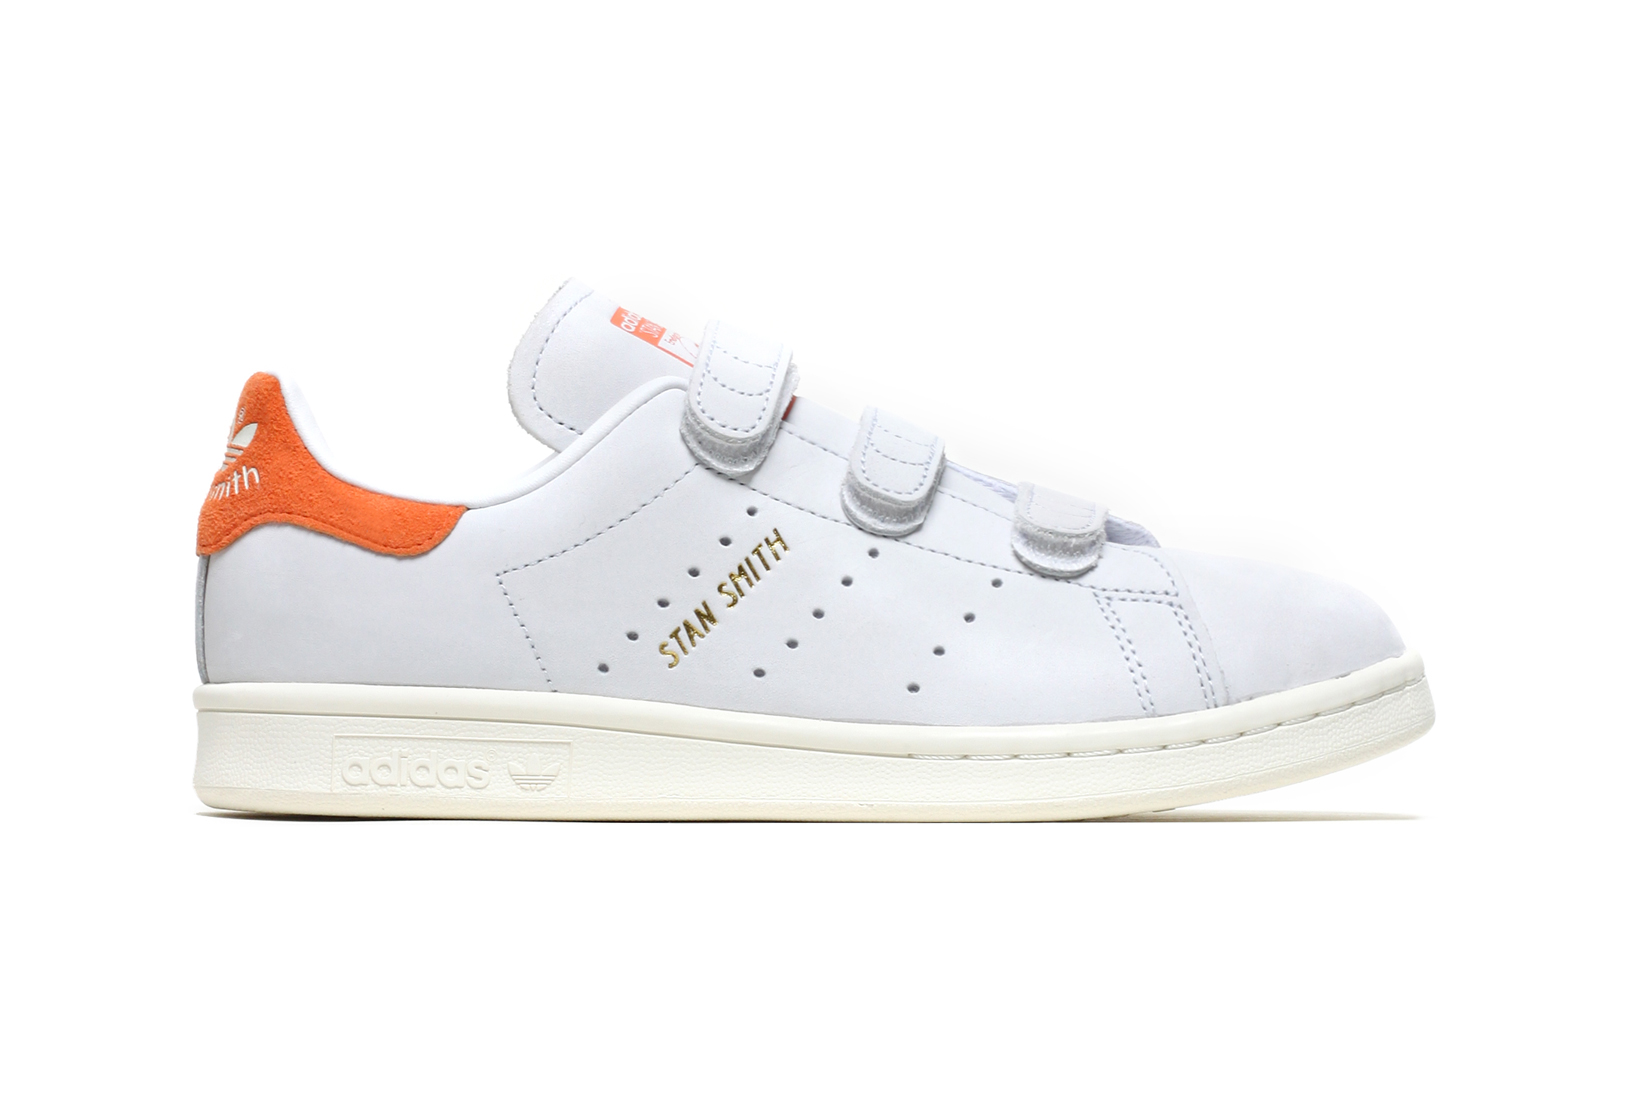 Stan smith femme scratch orange - Chaussure - lescahiersdalter